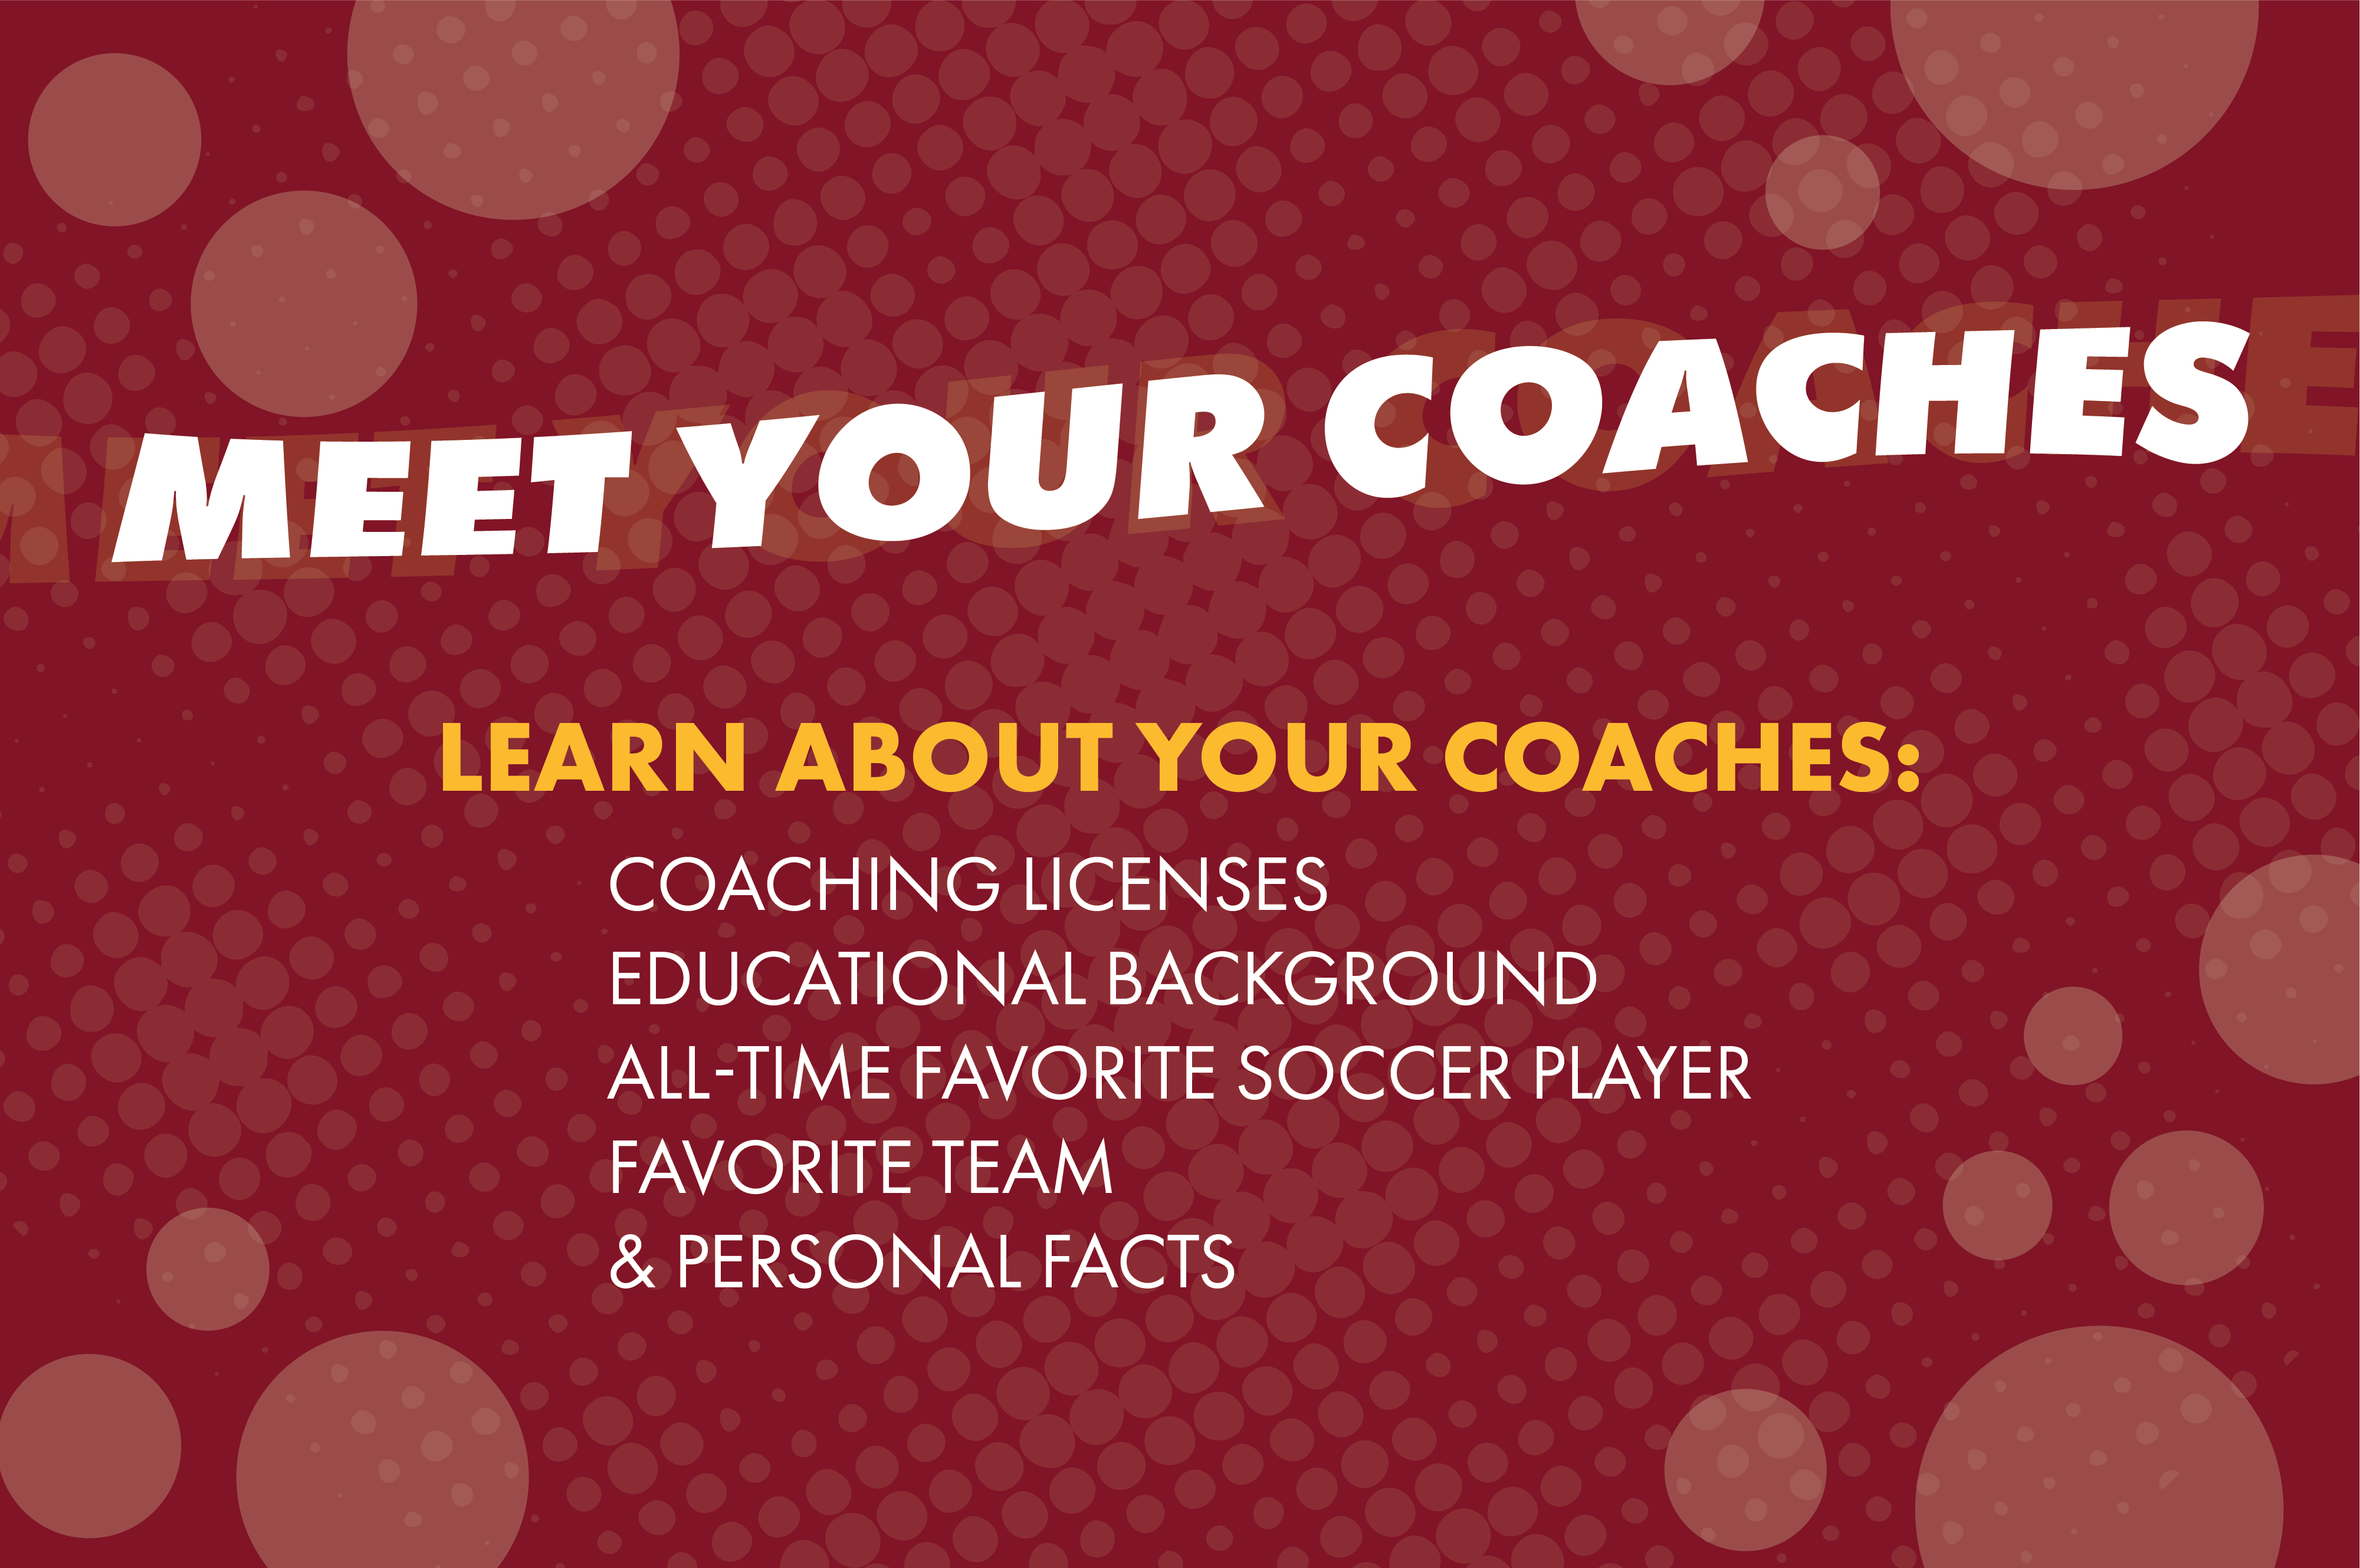 Learn about your coaches: coaching licenses, educational background, all time favorite soccer player, favorite team, and personal facts.